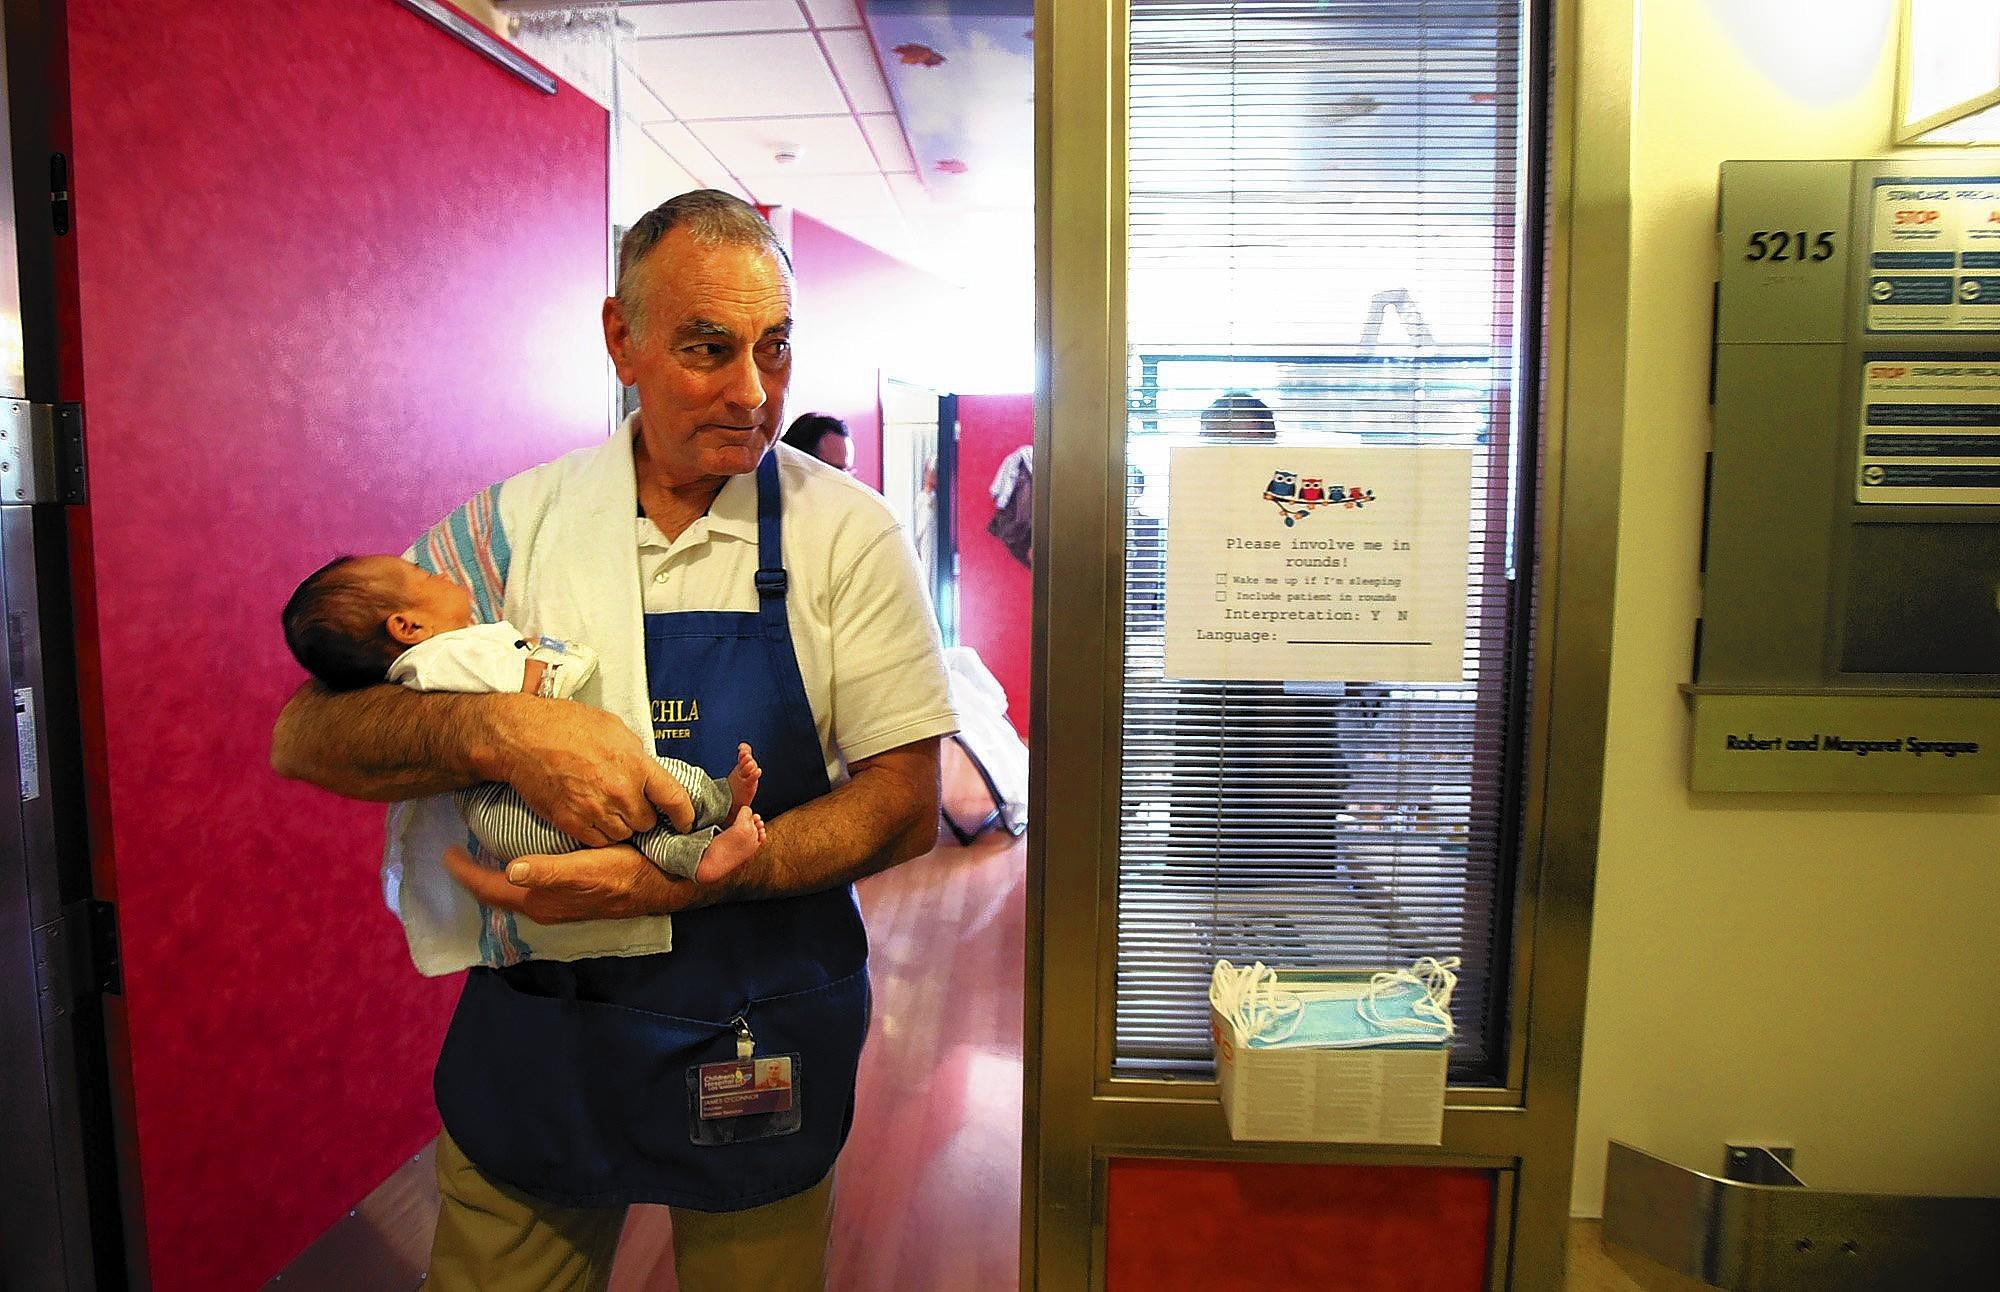 Jim O'Connor carries month-old patient Mace De Luna at Children's Hospital. O'Connor is known for his no-nonsense demeanor in the classroom, but he is a frequent blood donor and volunteers at Children's Hospital.